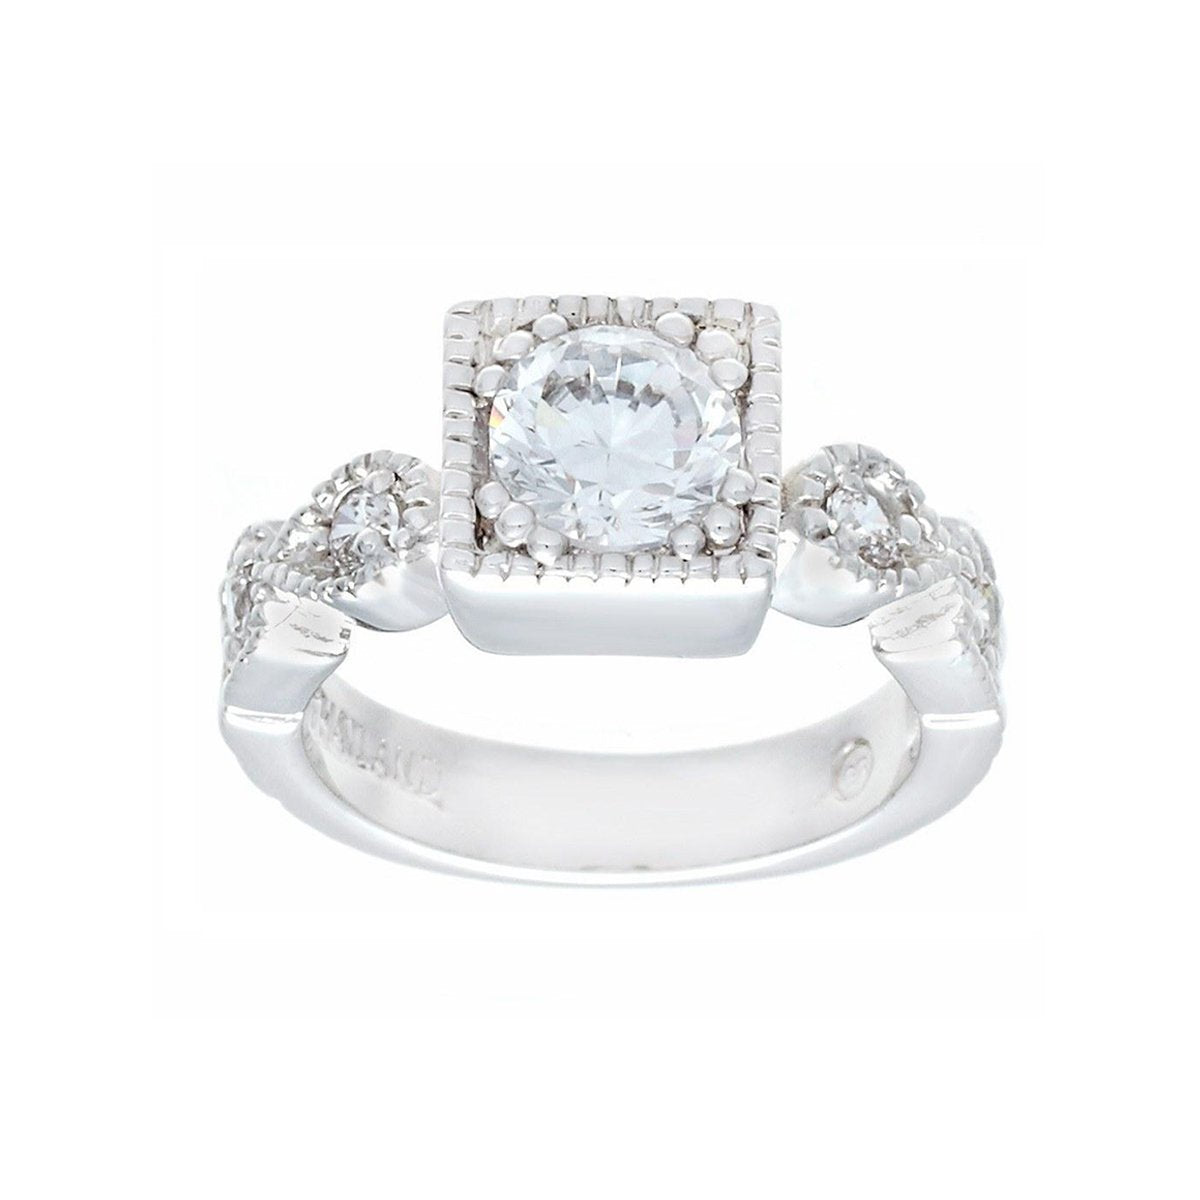 Designer Look Engagement Style Clear Stones Ring